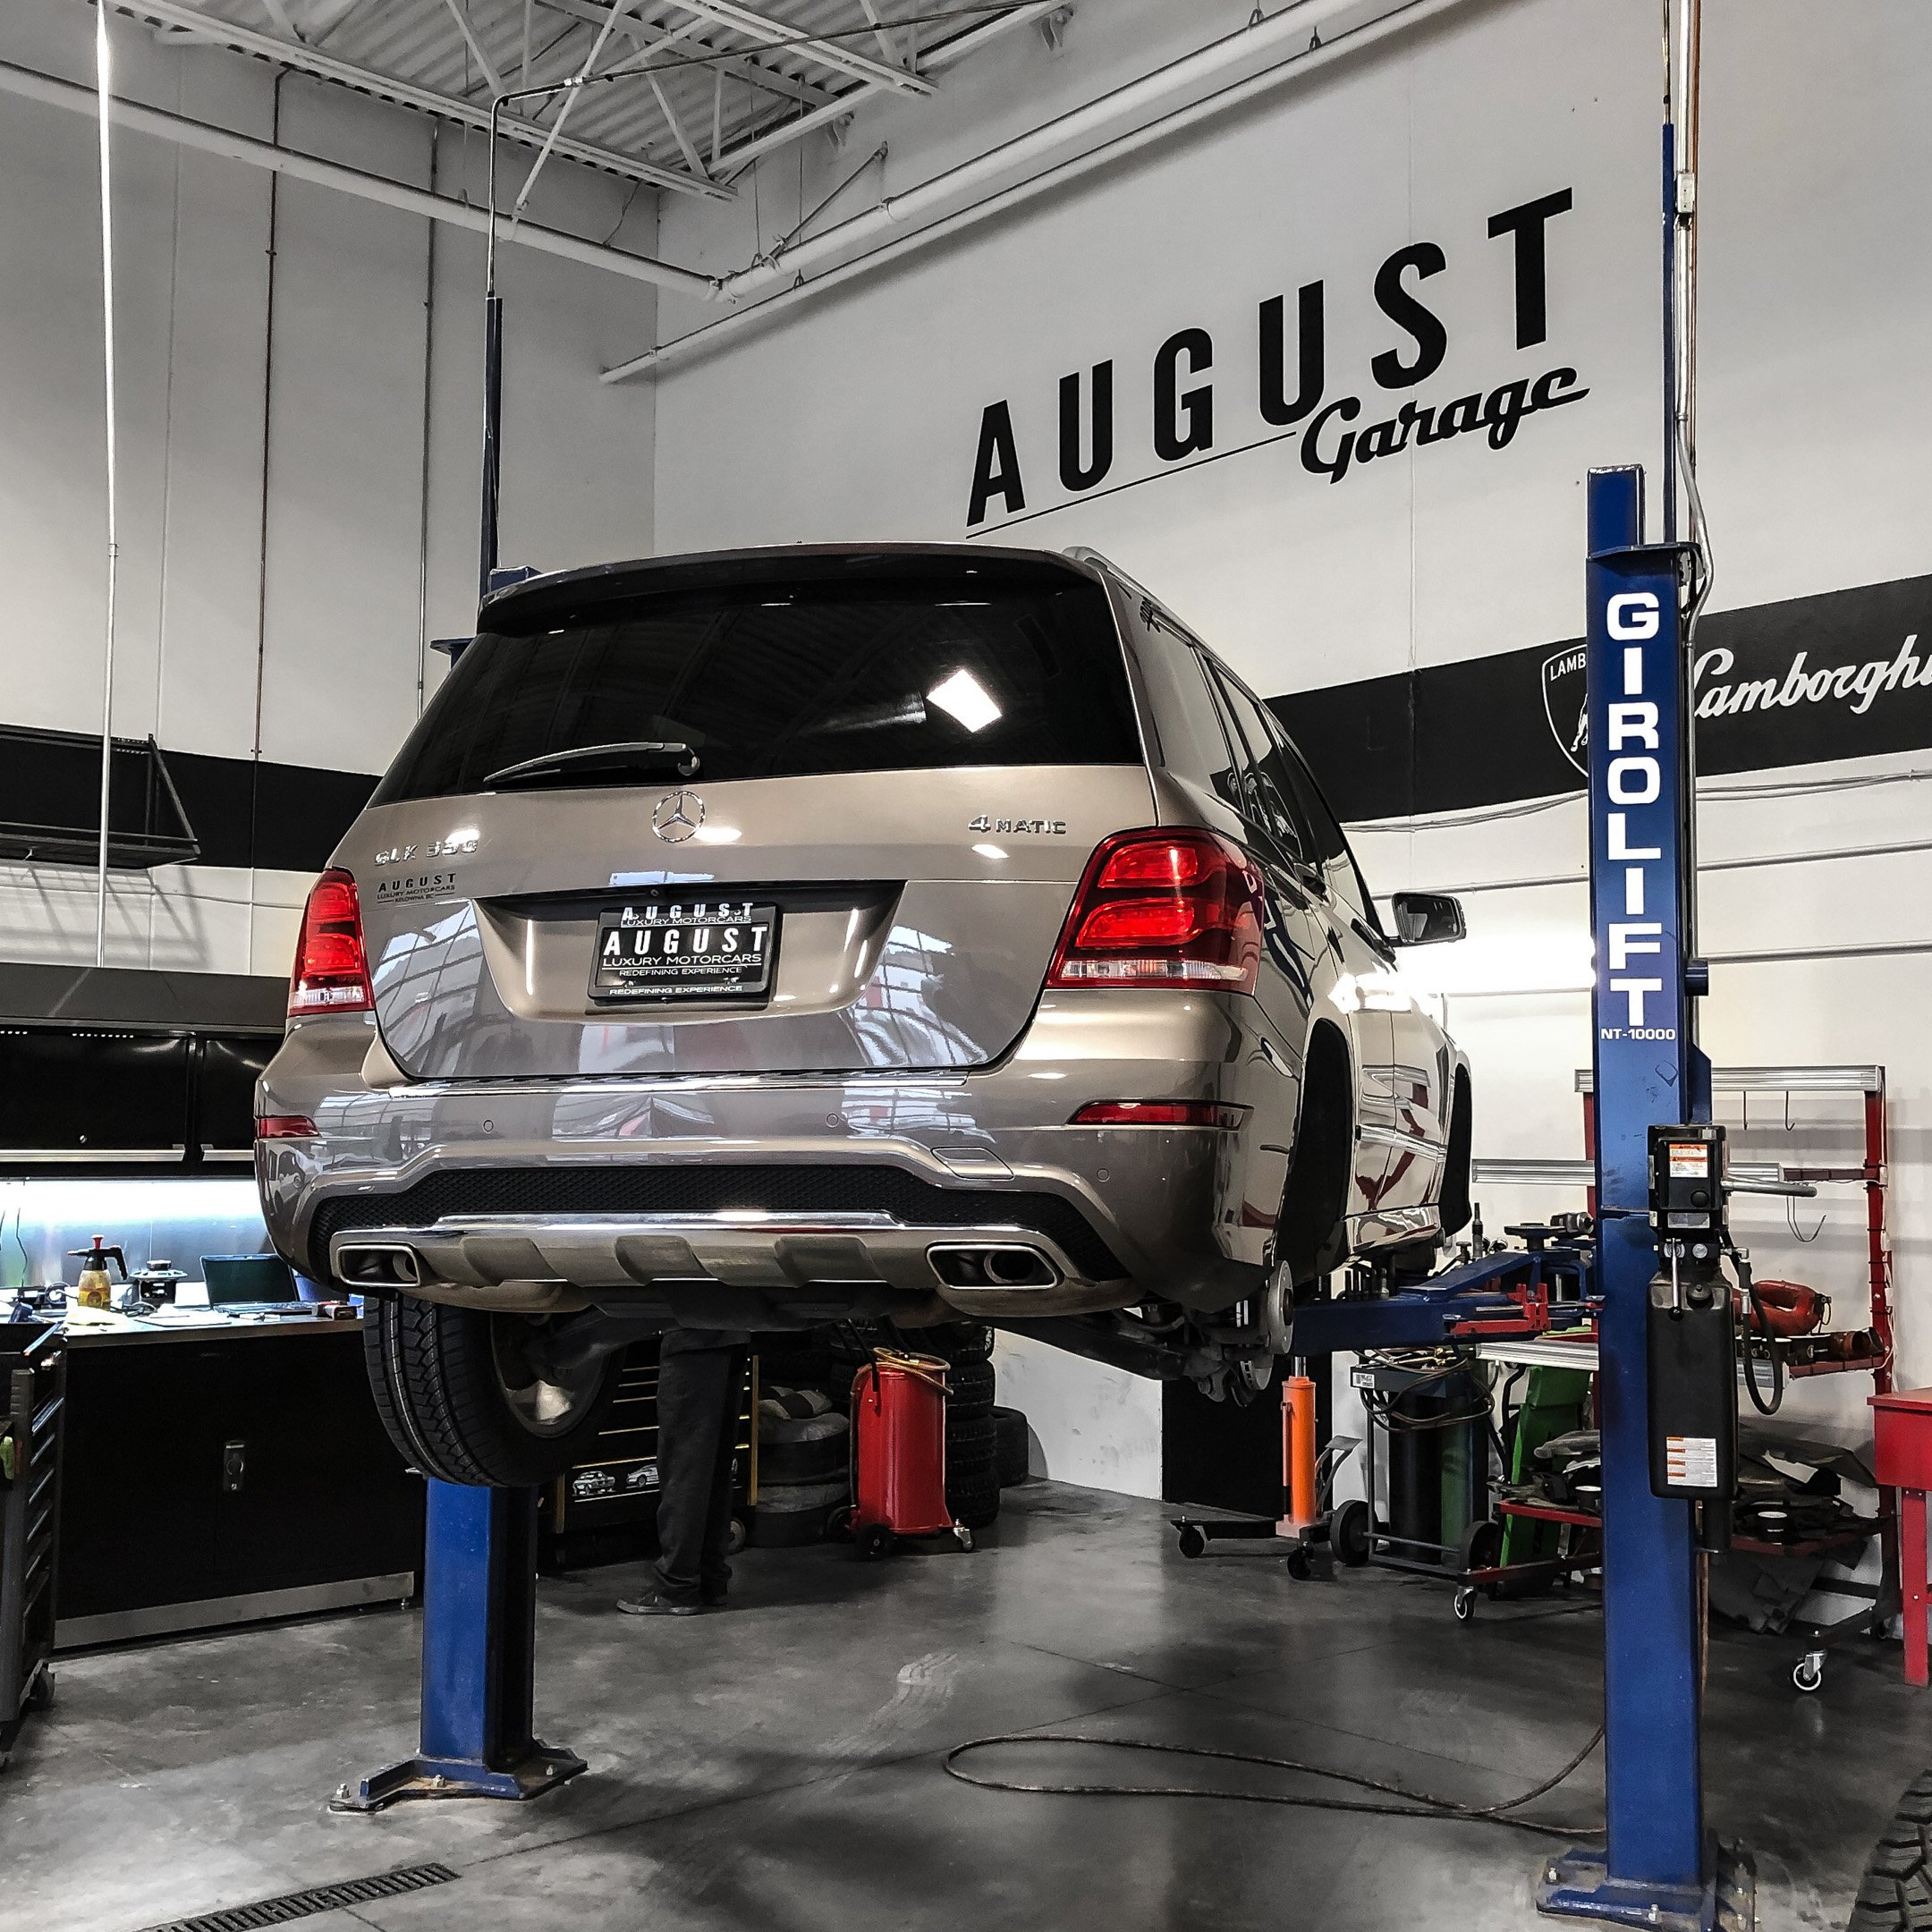 Mercedes-Benz Repair and Maintenance at August Garage in Kelowna BC